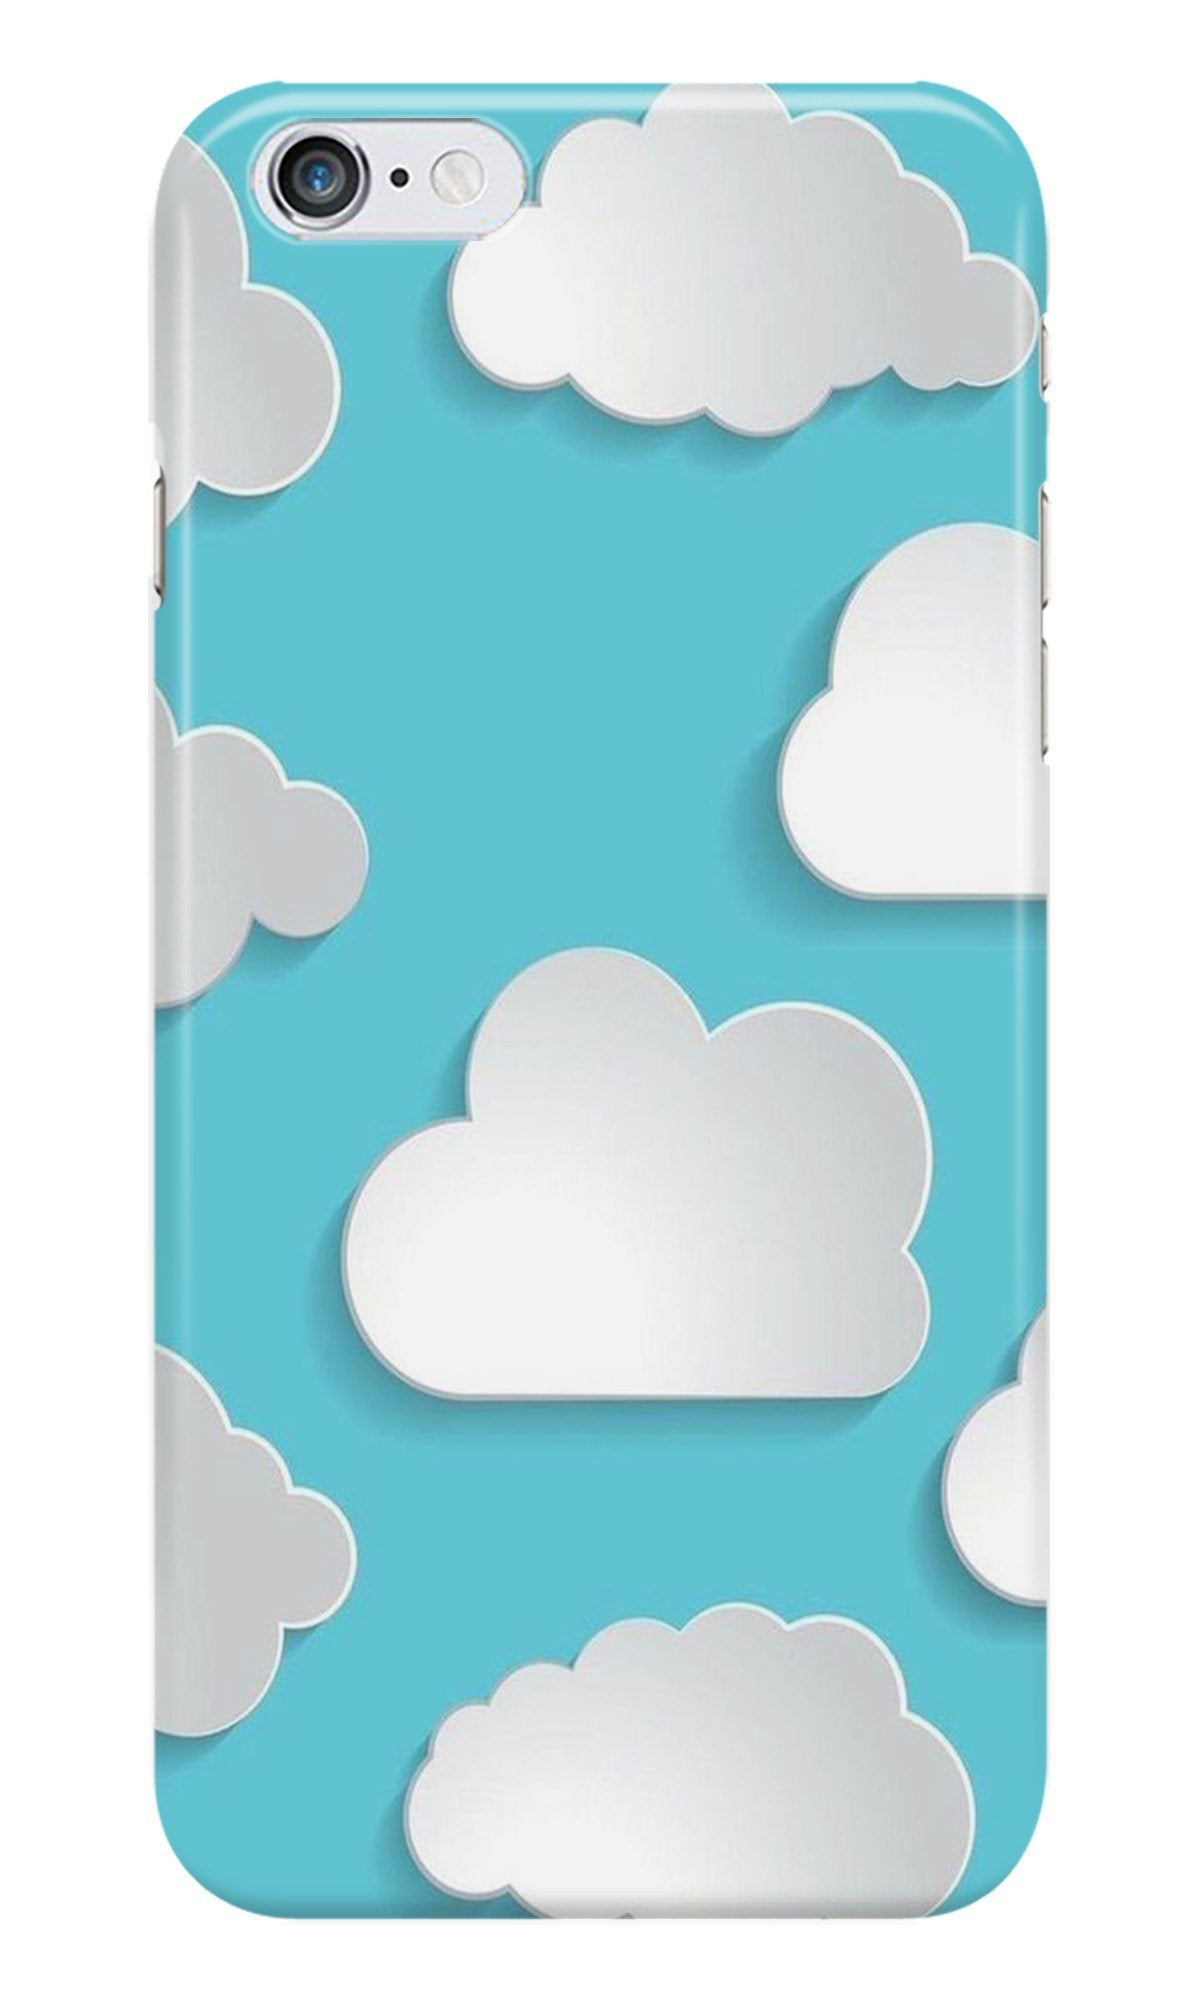 Clouds Case for Iphone 6/6S (Design No. 210)